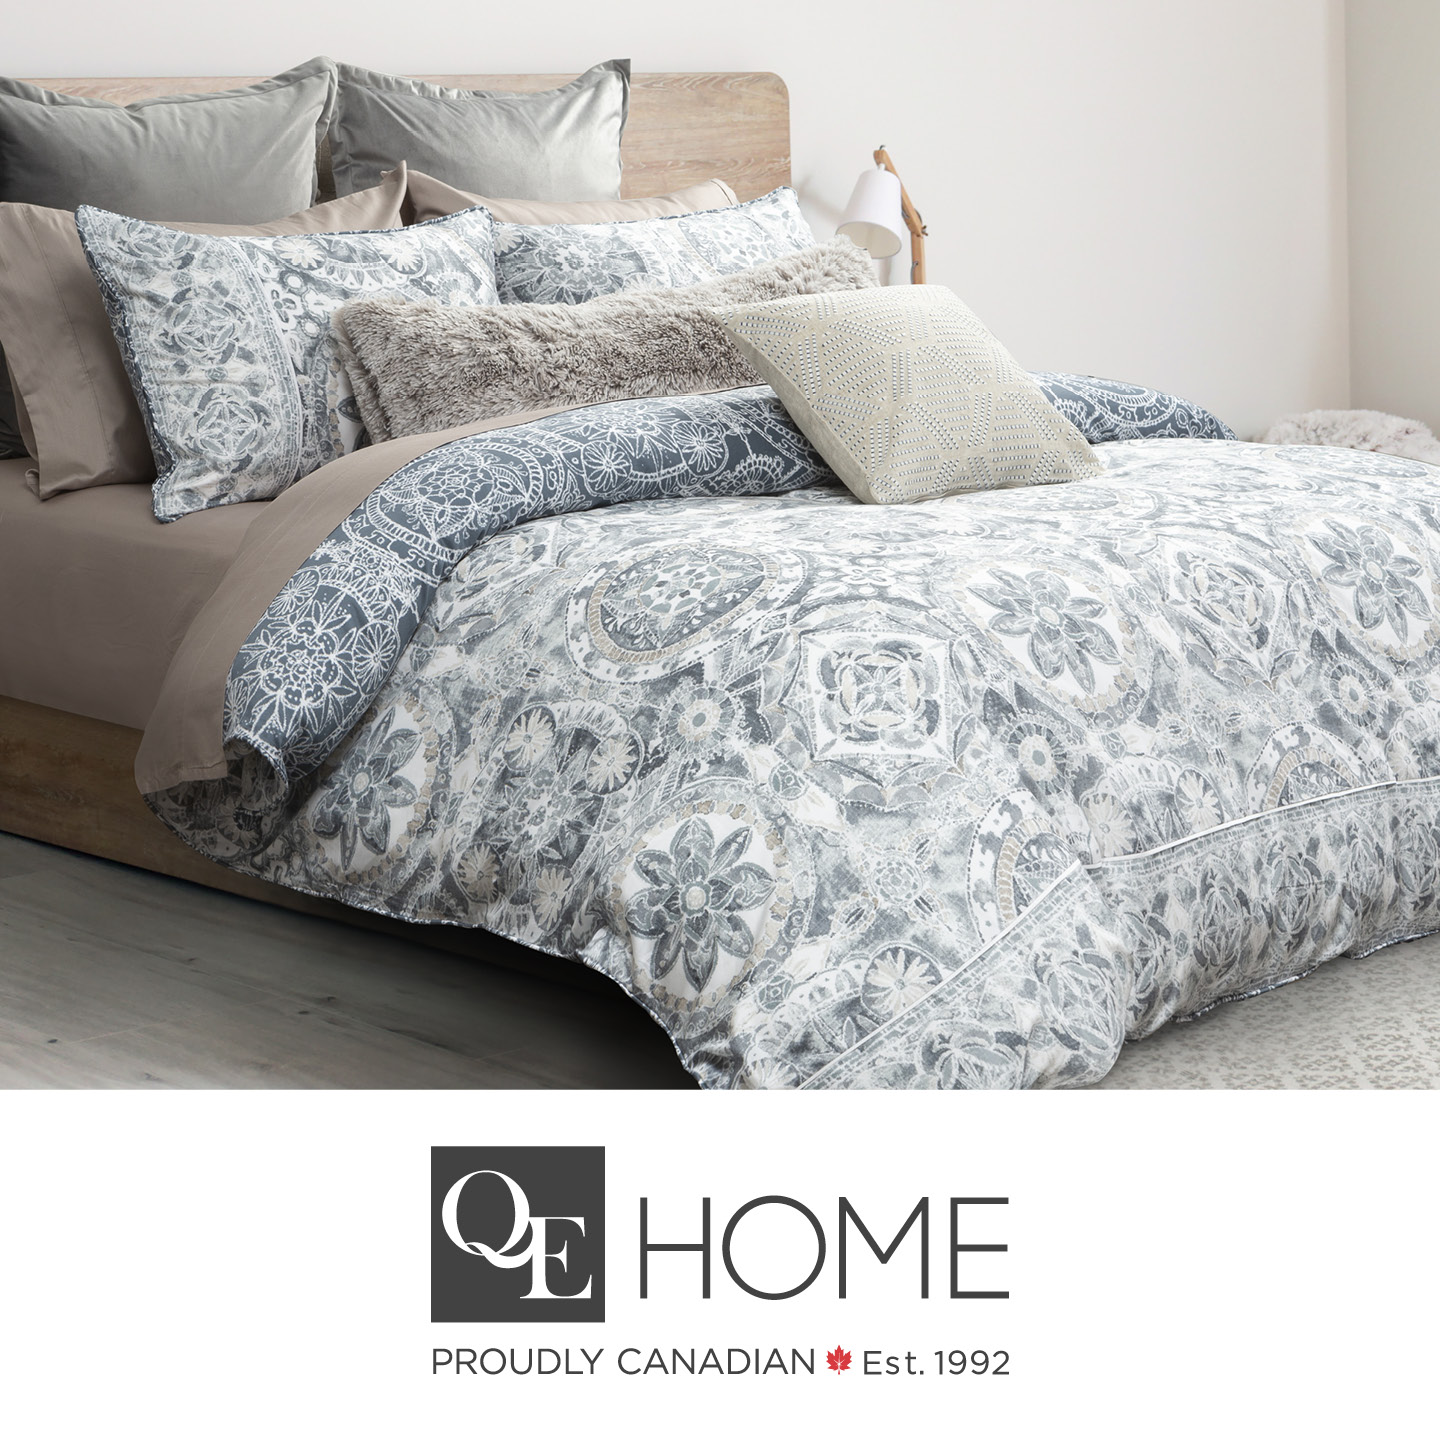 Sonesta bed with white and grey duvet